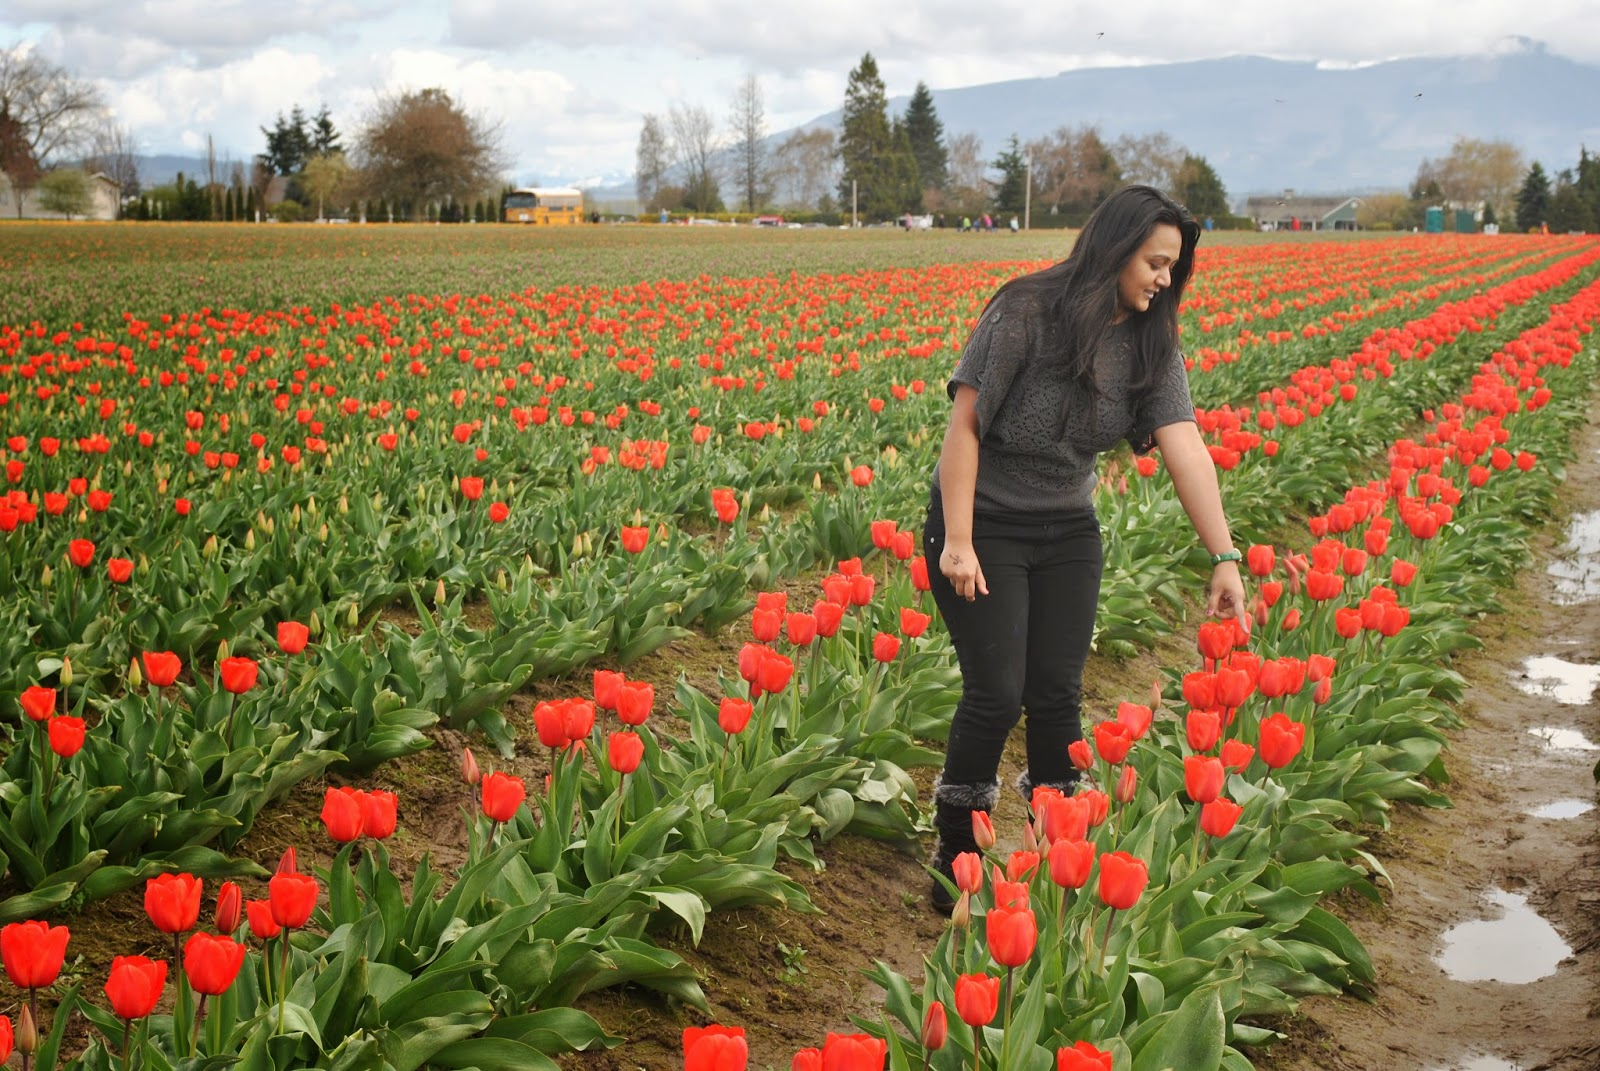 Tulip festival, tulip flowers, girl in a flower garden, Beautiful flowers and beautiful girl, Places to visit near Seattle,